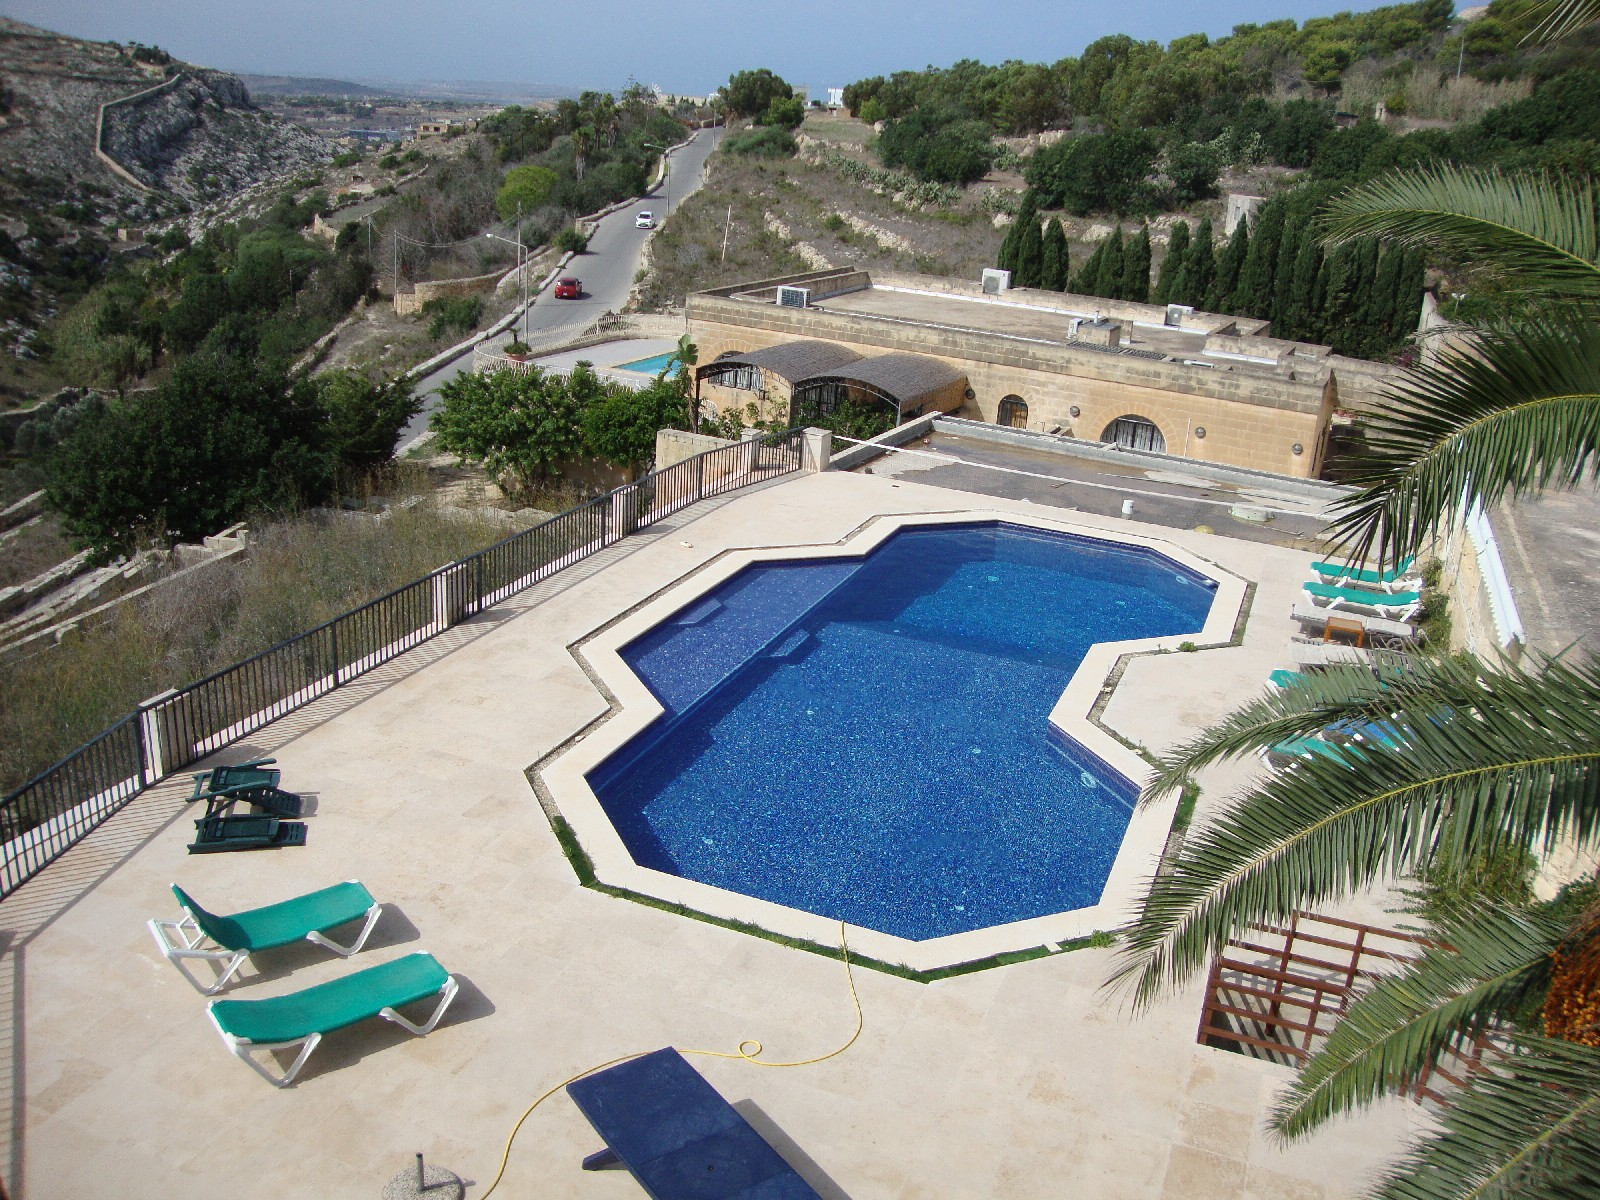 Single Family Home for Sale at Fully Detached Villa Madliena, Malta